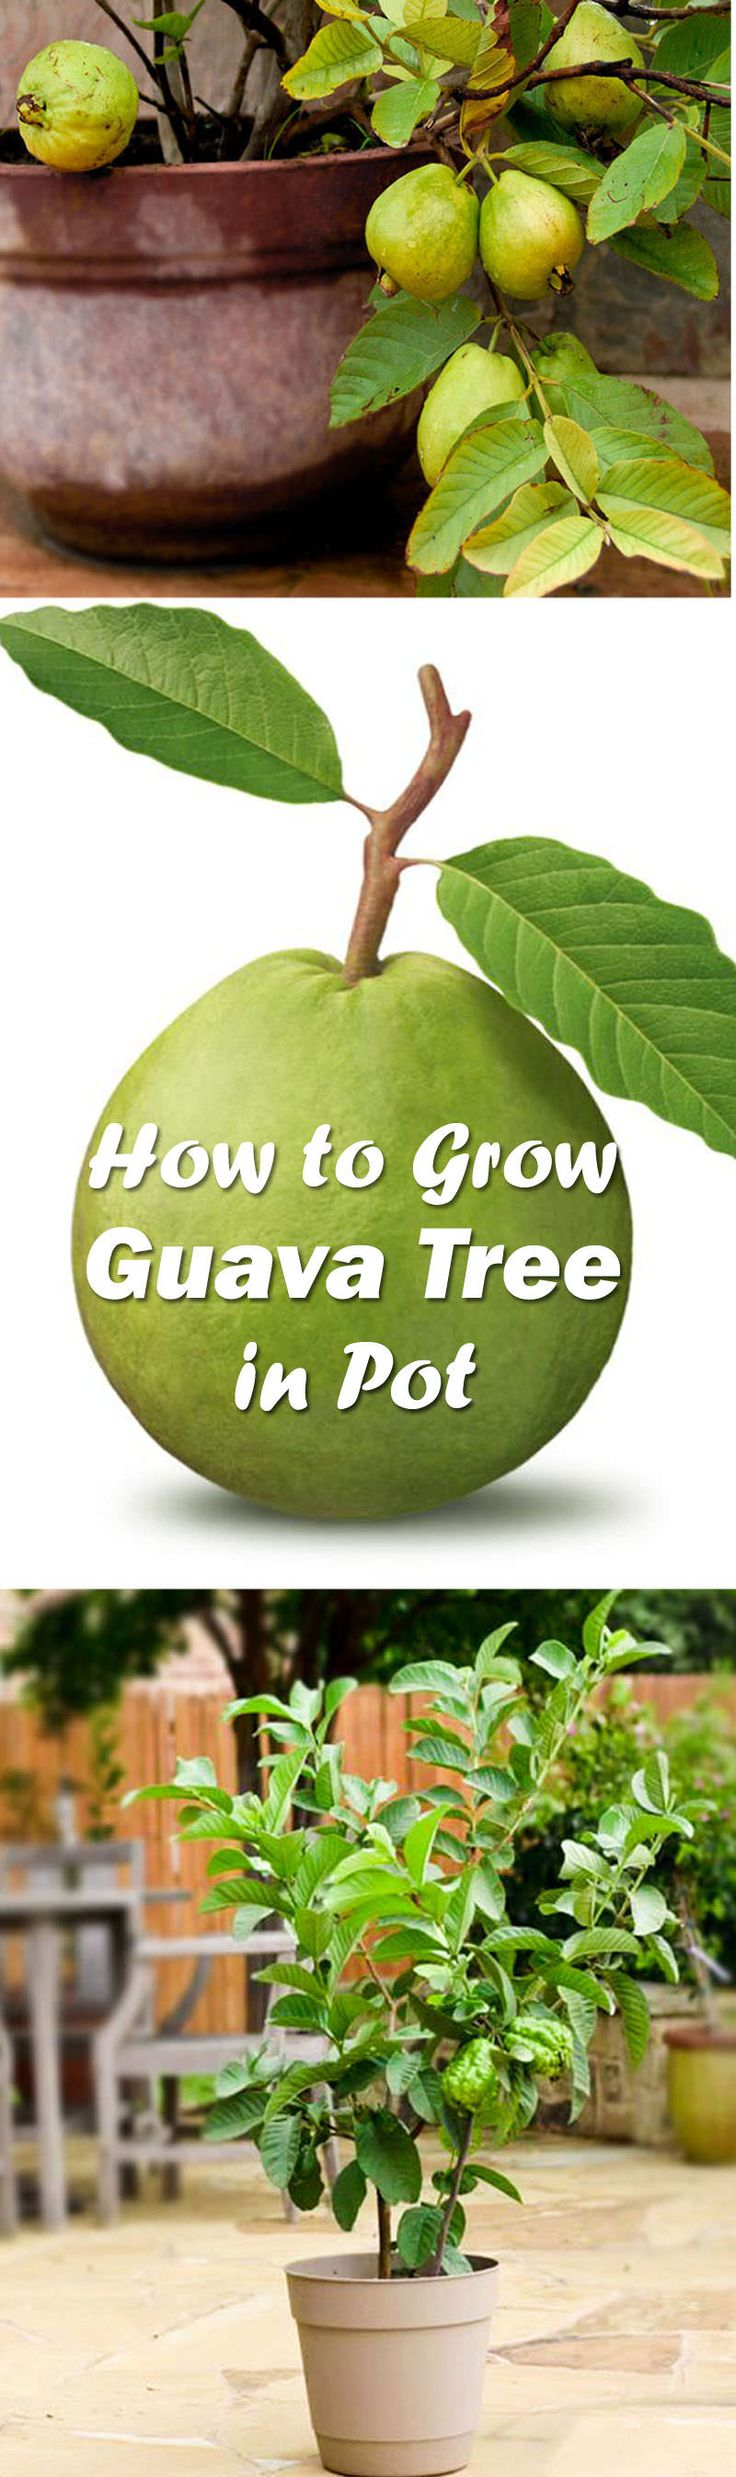 Learn to grow guava tree in a pot. It will delight you with its sweetly scented flowers, delicious fruits, and beautiful tropical appearance.